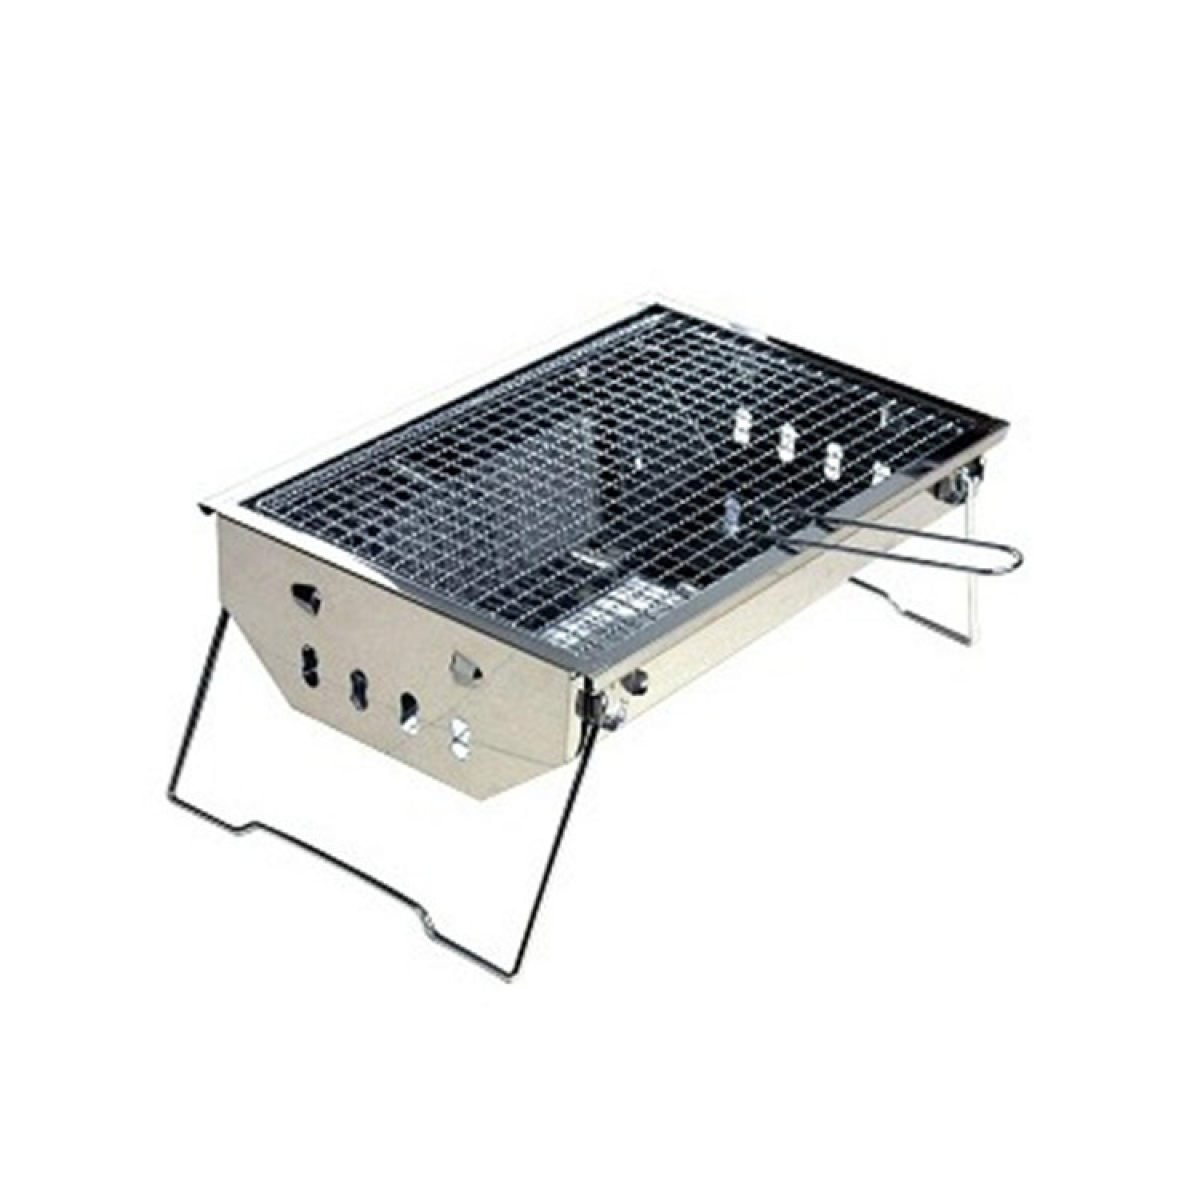 Edelstahl Barbecue Pits Outdoor Portable Holzkohle Öfen Verdickte Faltbar Barbecue Grill Outdoor Holzkohle Ofen Thick Grill